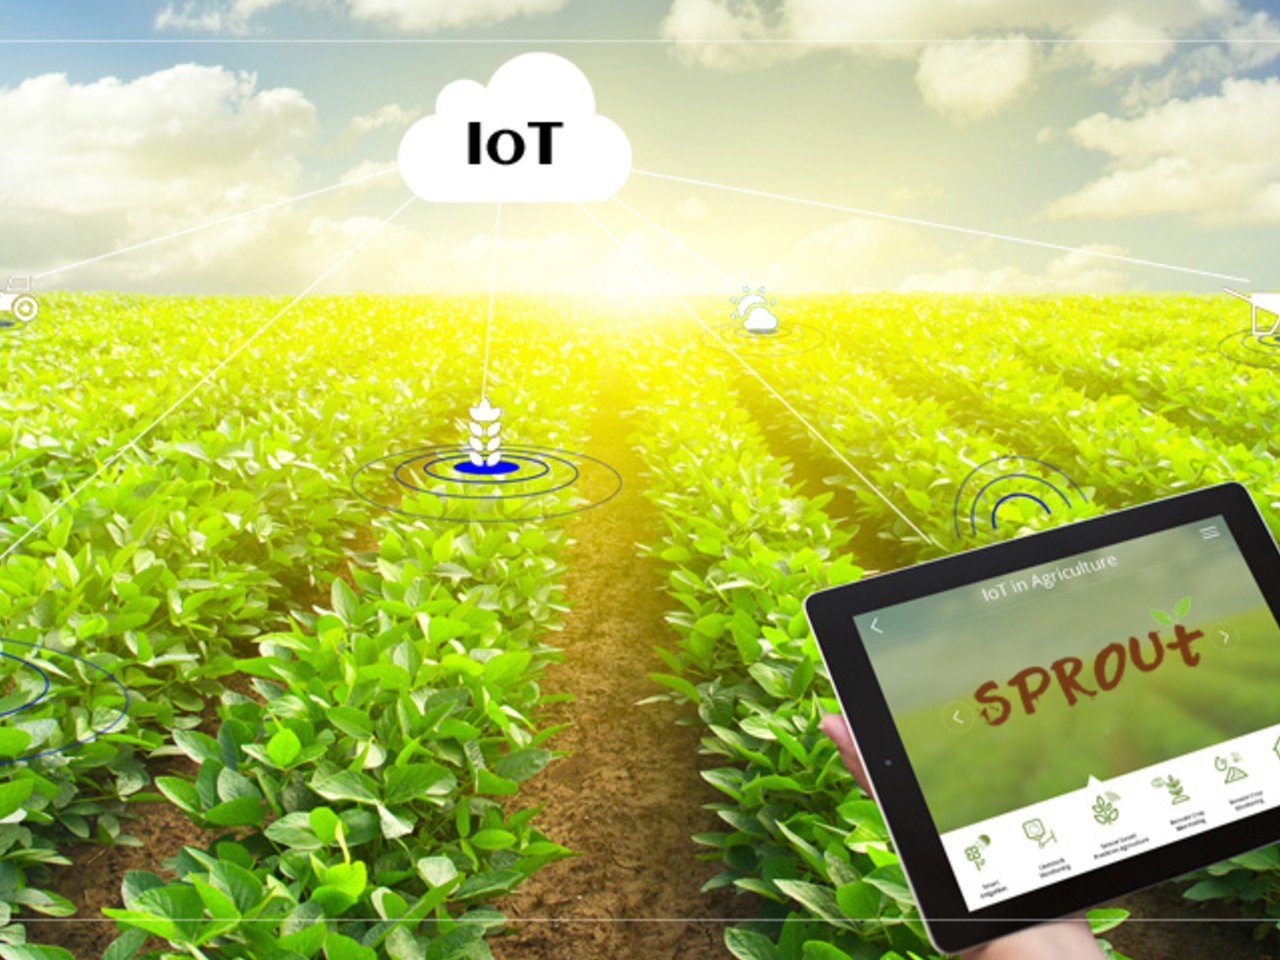 Sprout: An IoT based agriculture monitoring system